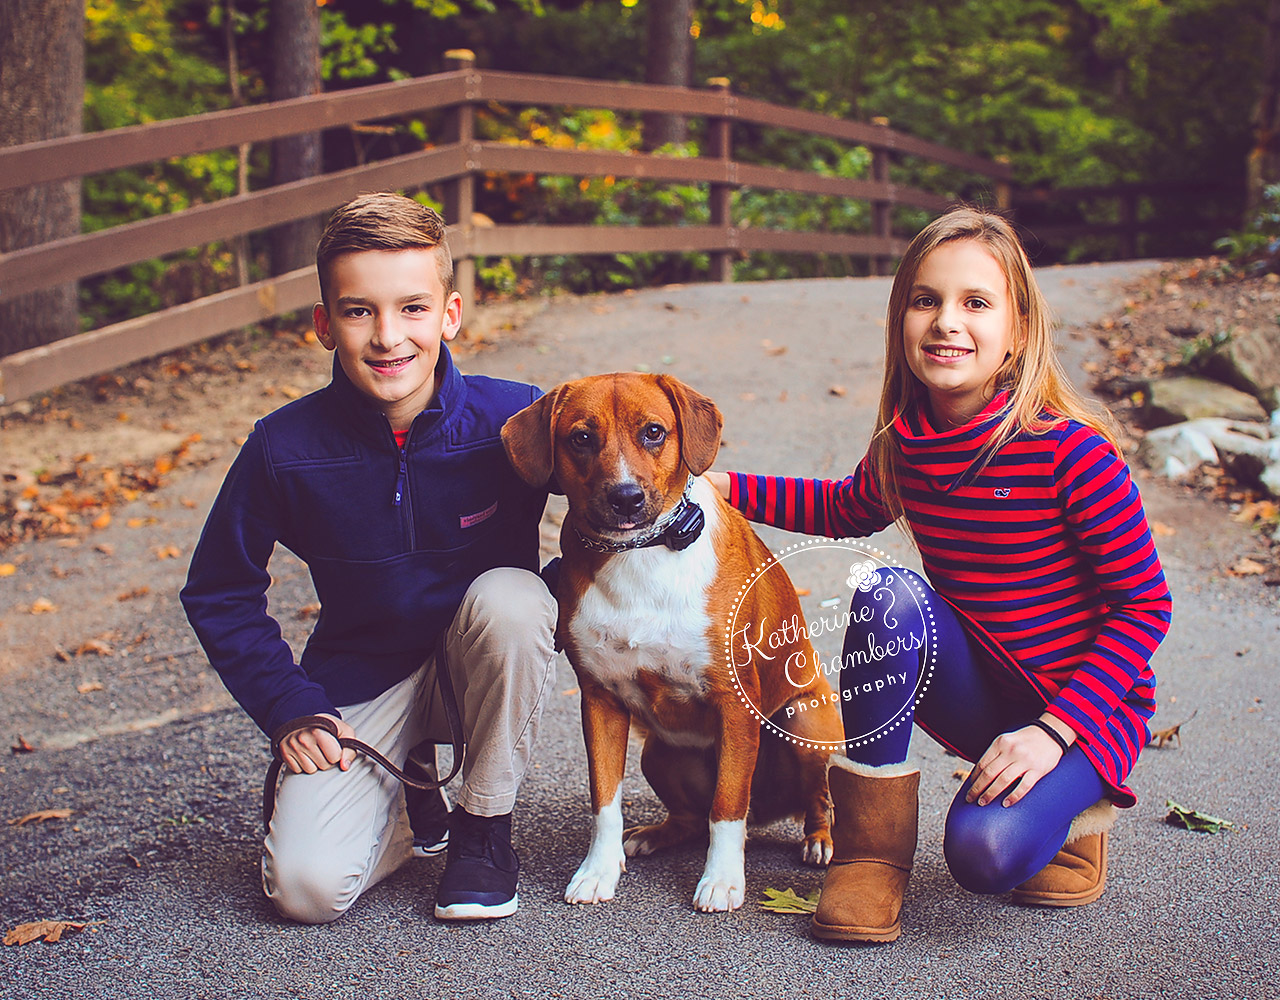 Kids with Dog, Family of 4, Siblings, Fall Family Photos